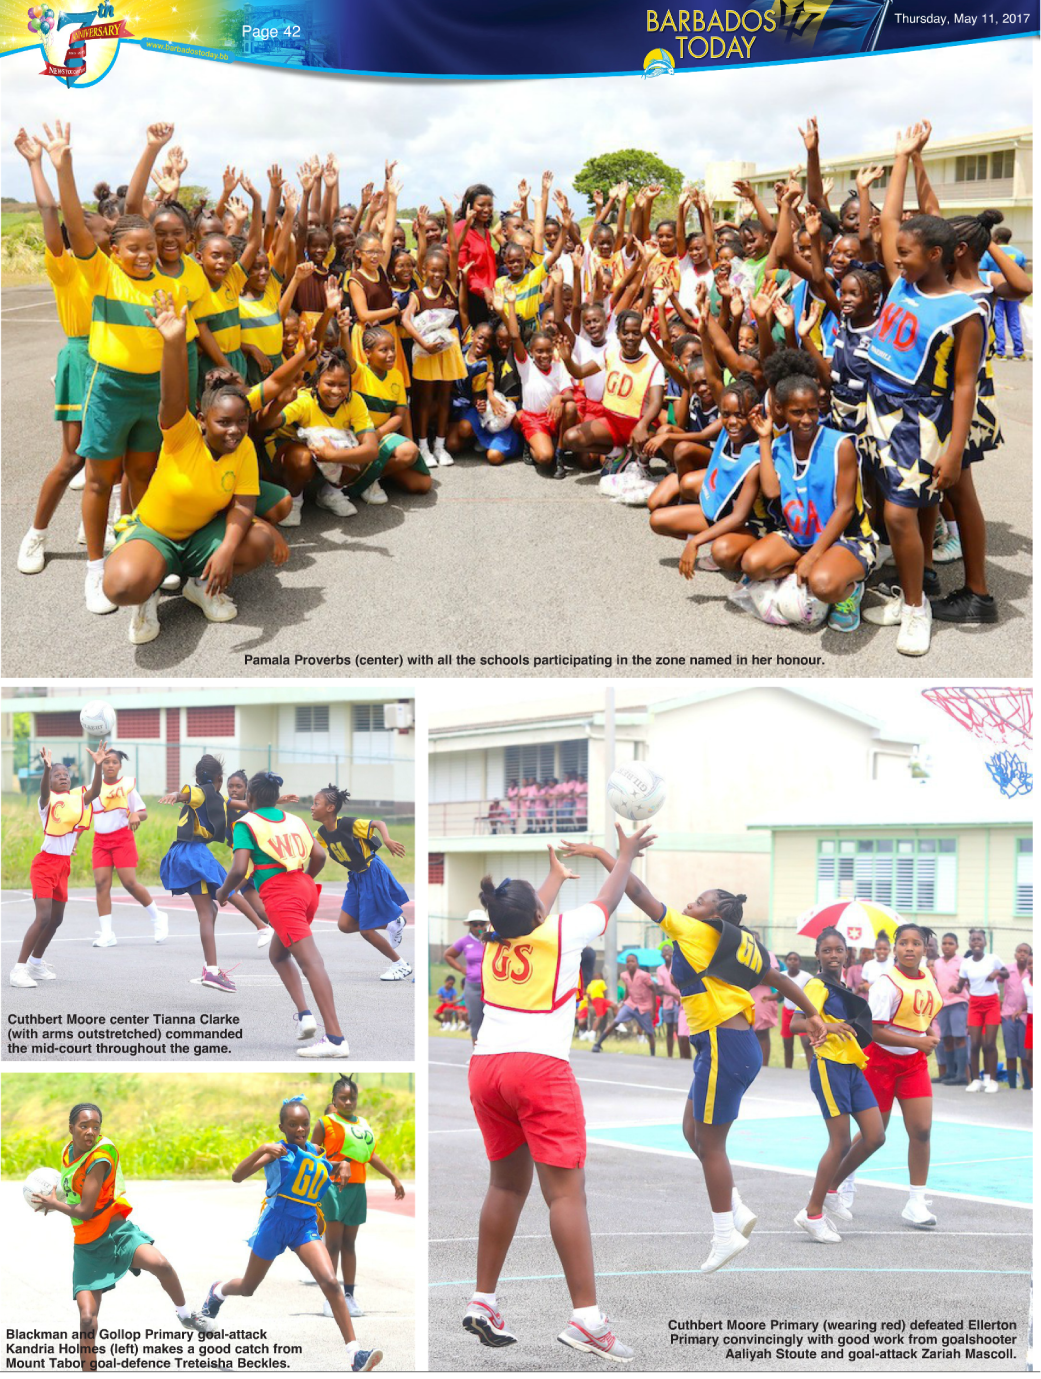 Pamala Proverbs of PRMR Inc. donates netballs to Barbados athletes